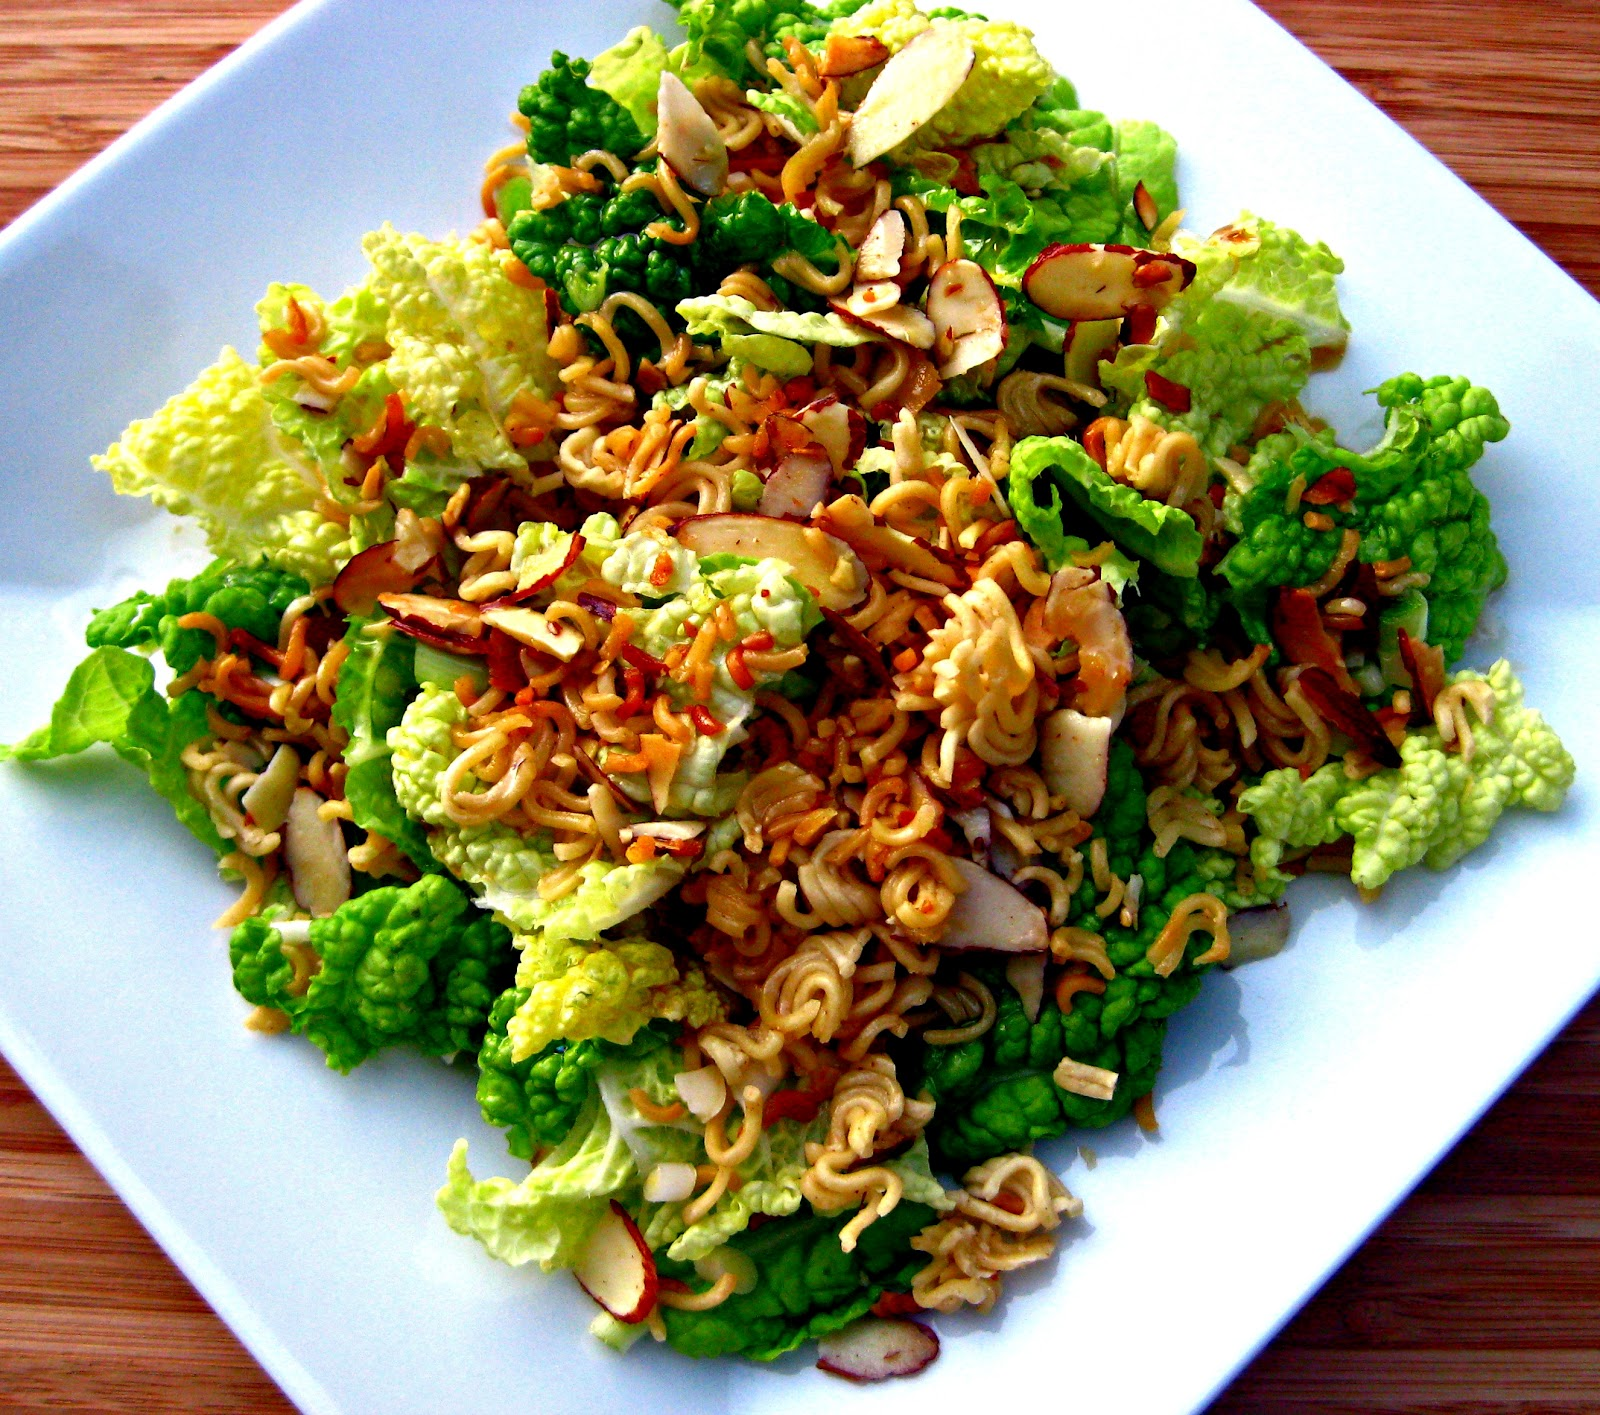 Karis' Kitchen | A Vegetarian Food Blog: Napa Cabbage Salad